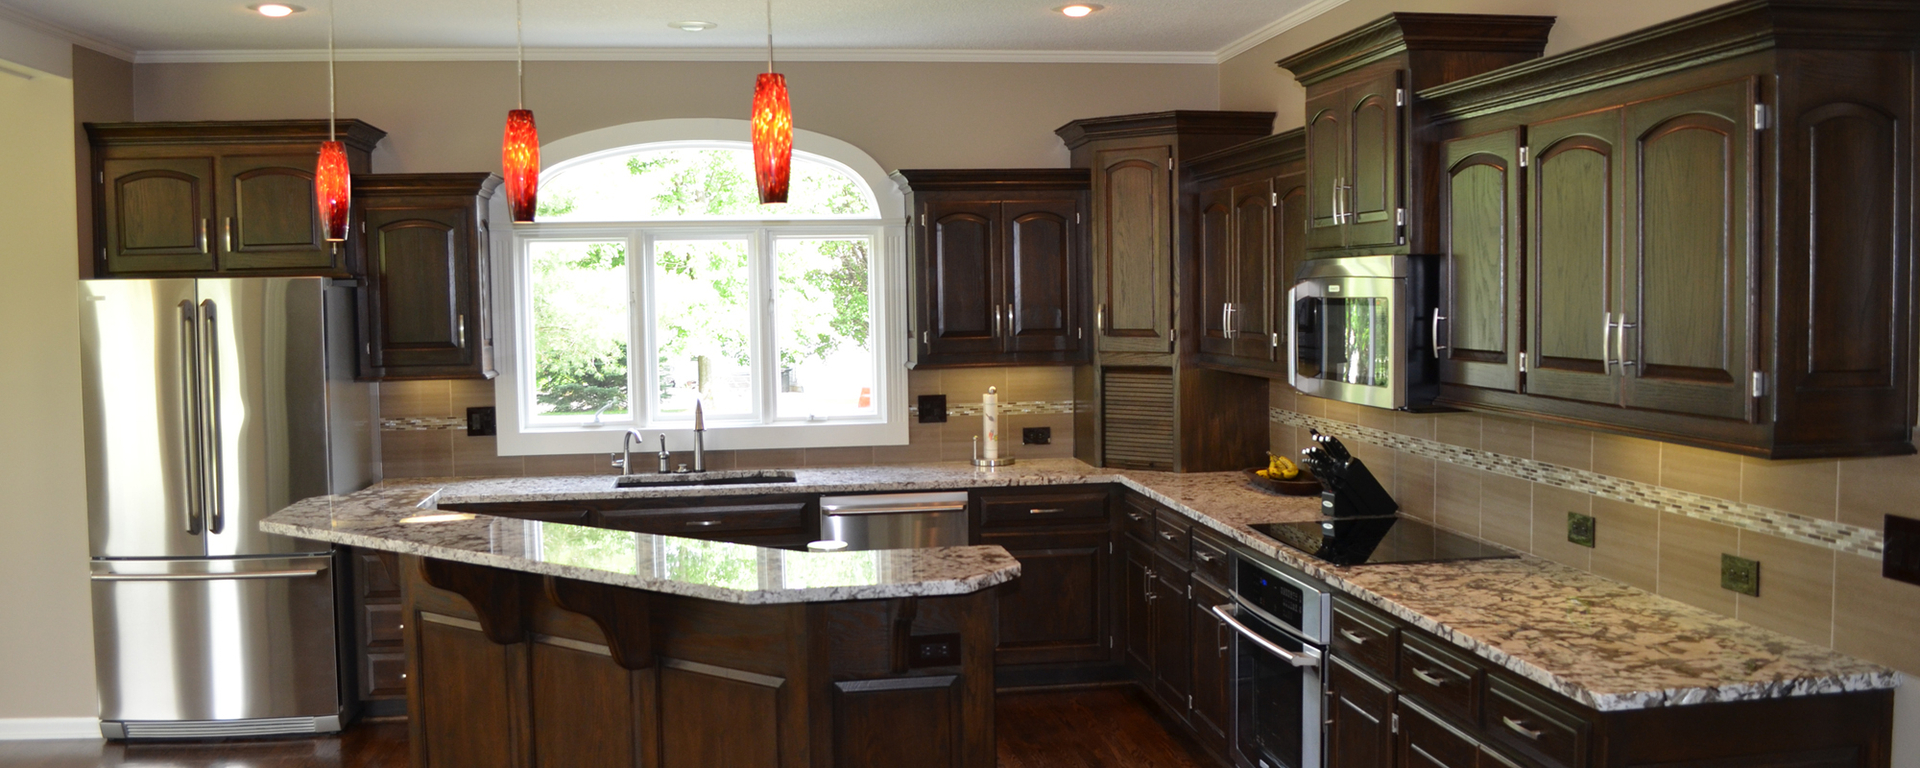 santex construction - kitchen remodel, room additions, home additions